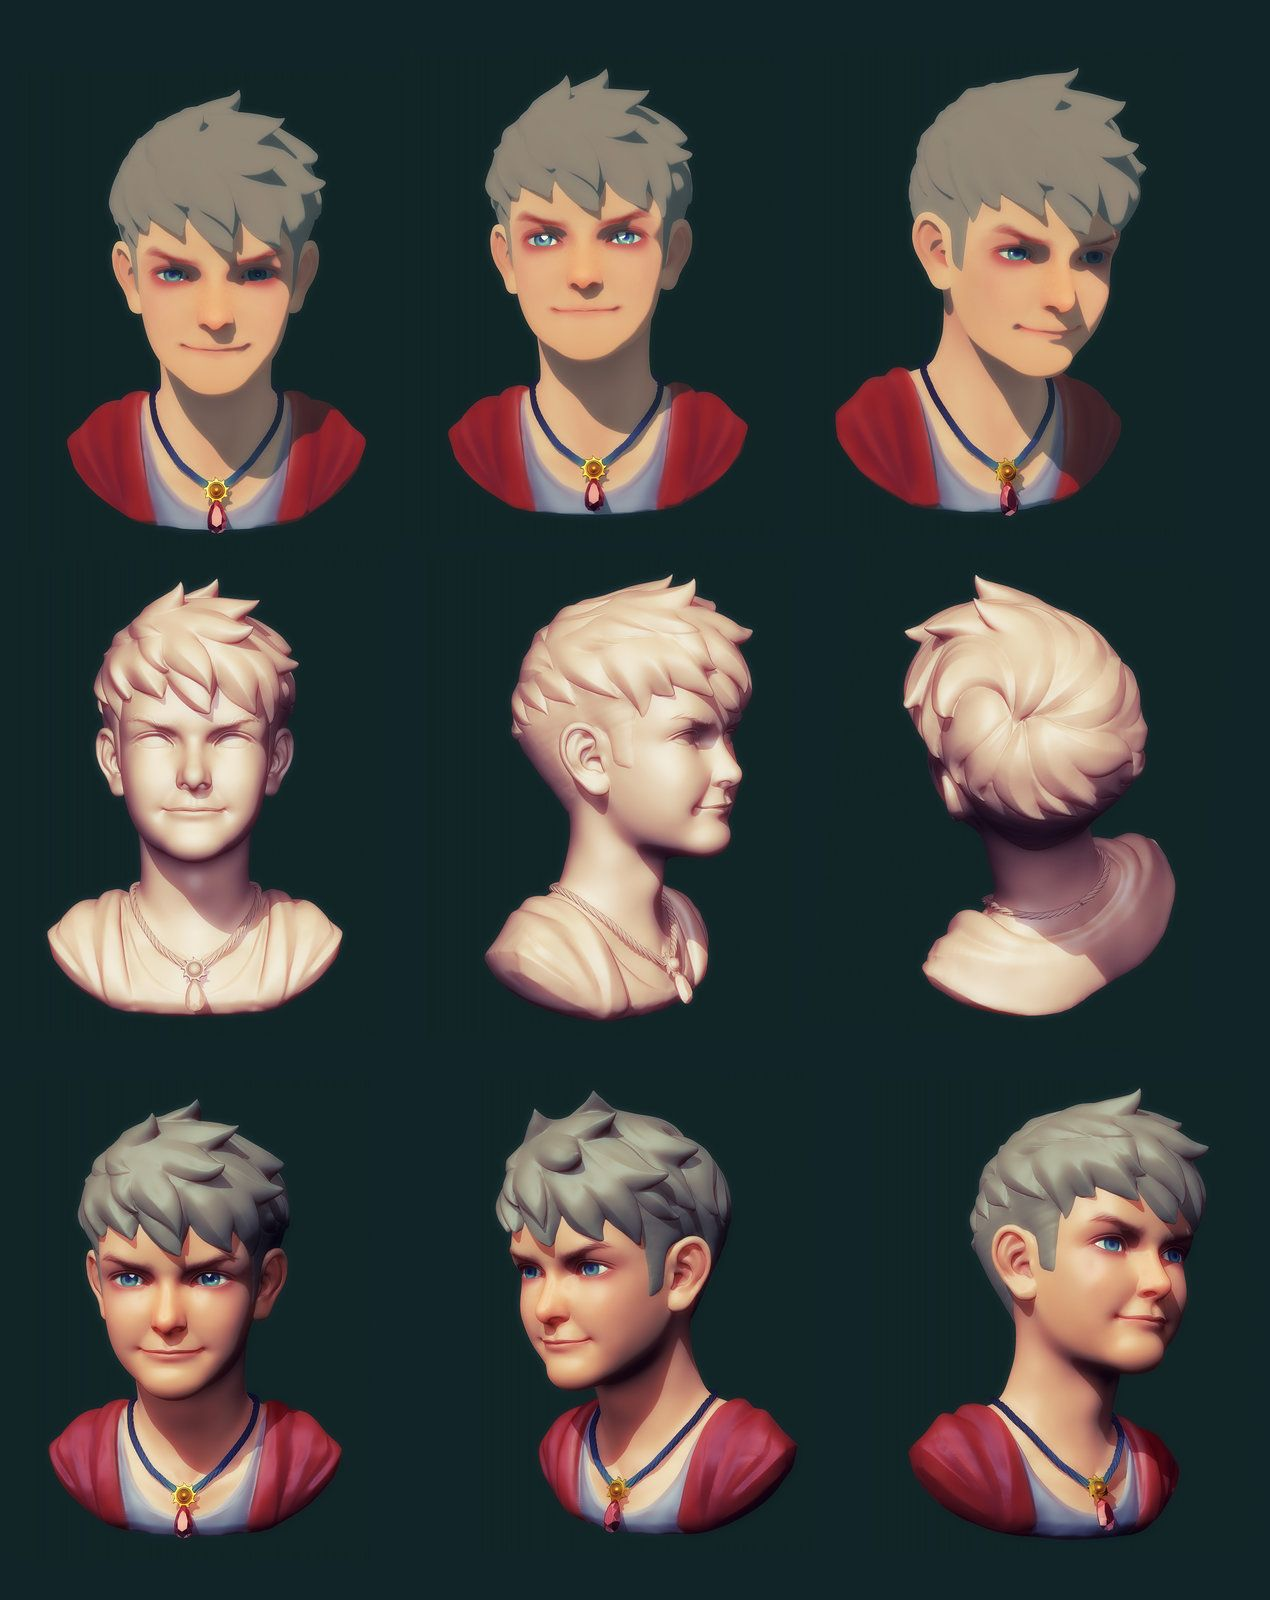 3d Character Design Process : Process d art pinterest characters and